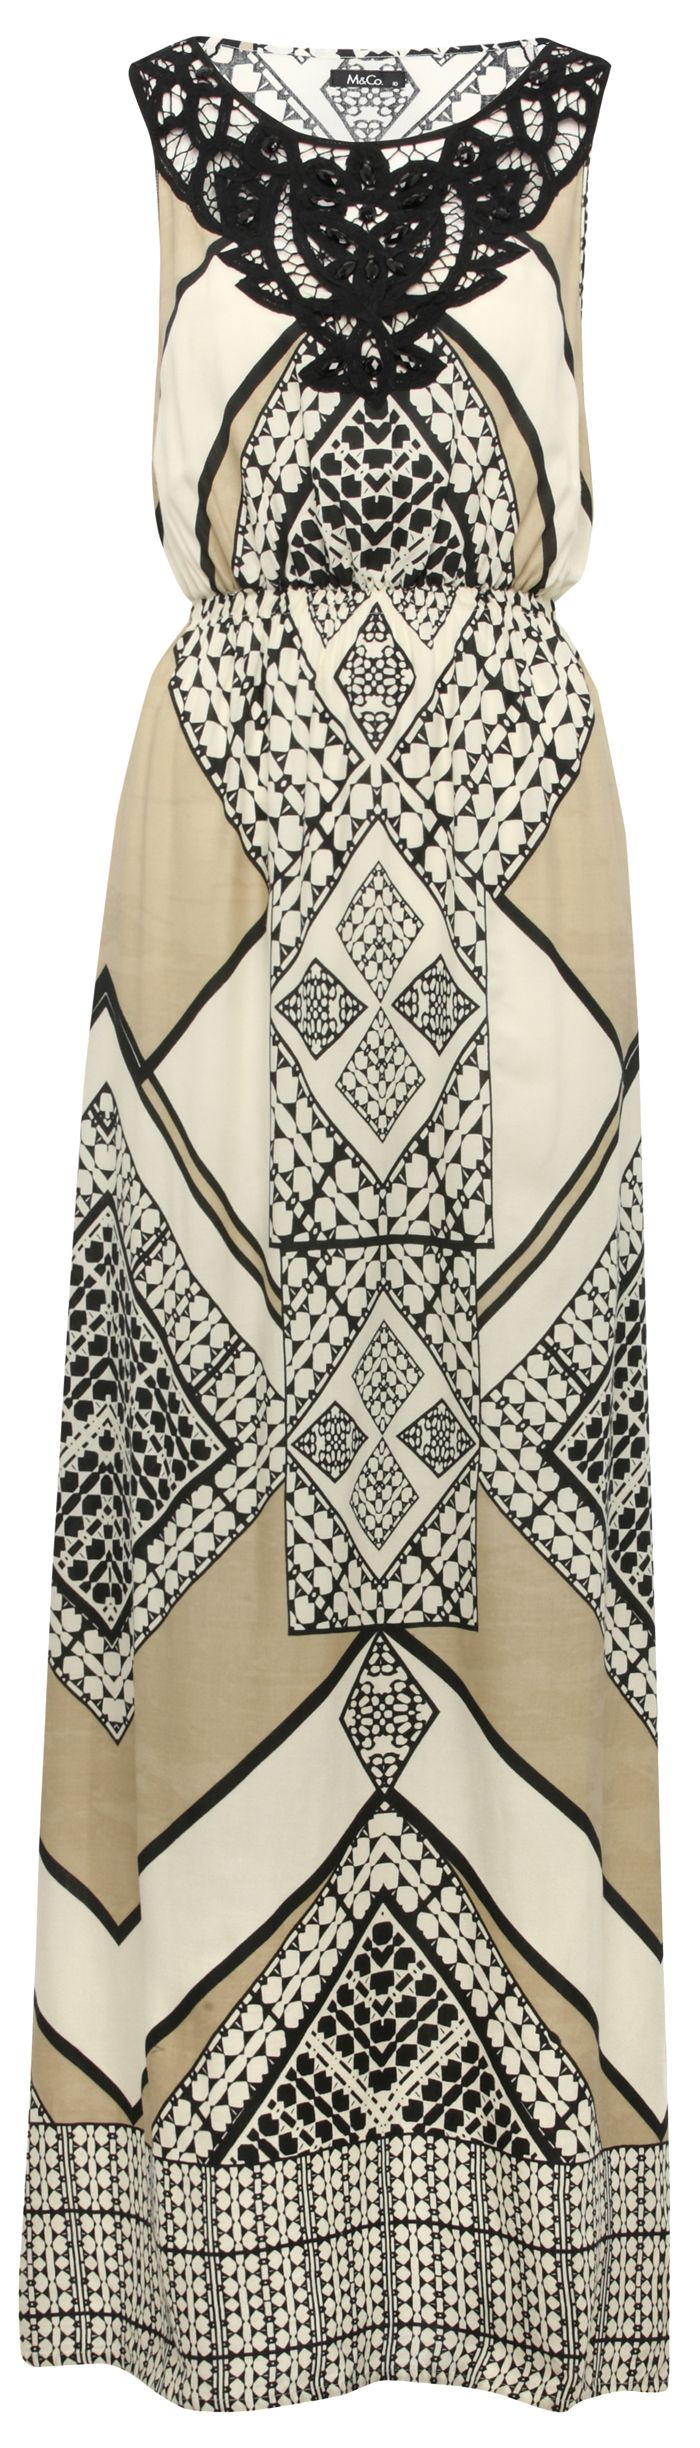 Women over 40 50 60 can wear tribal prints - tribal print maxi dress from M and Co prshots - CLICK TO READ here: http://boomerinas.com/2013/04/trends-for-spring-summer-clothes-for-real-women-over-40-2/